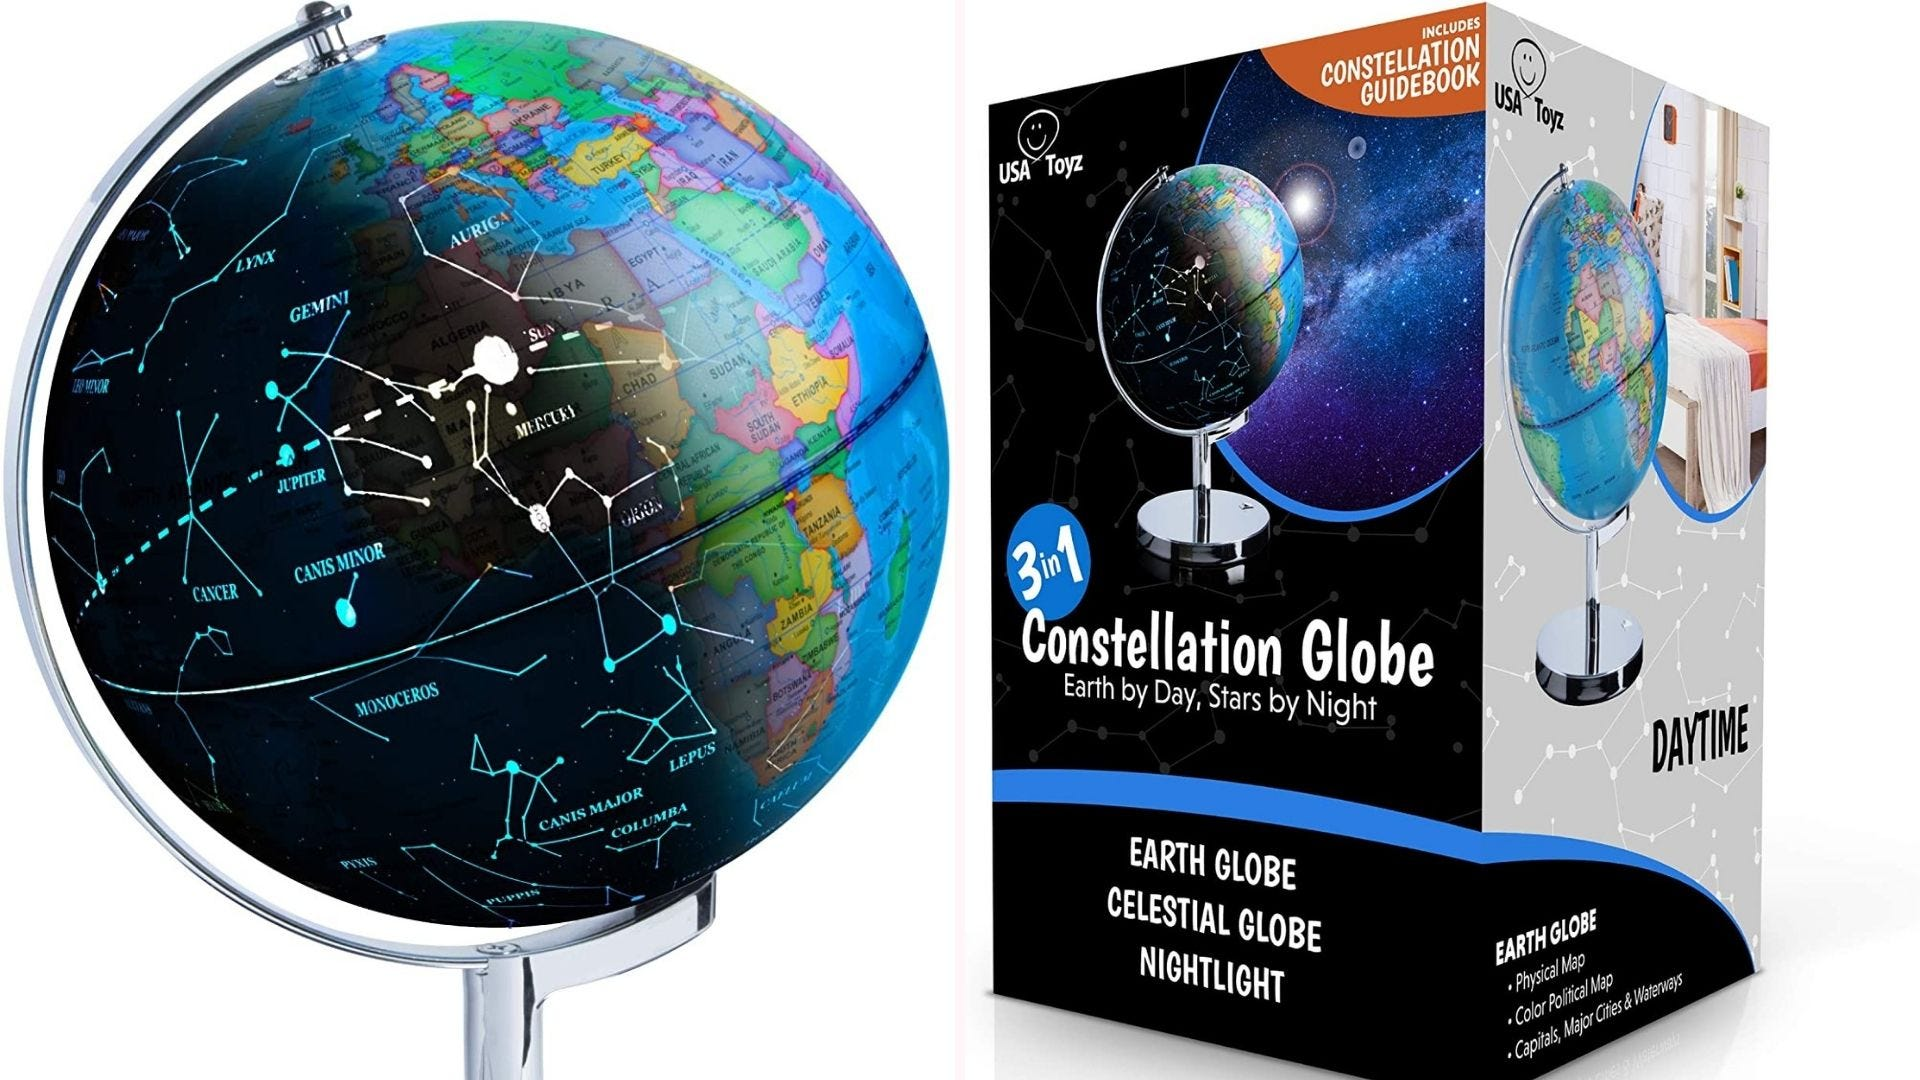 On the left, 13.5-inch tall globe is shown in two halves: a standard desk globe with detailed countries, and an illuminated globe that reveals constellations when the lights are turned off. On the right, the globe sits in its rectangular packaging.